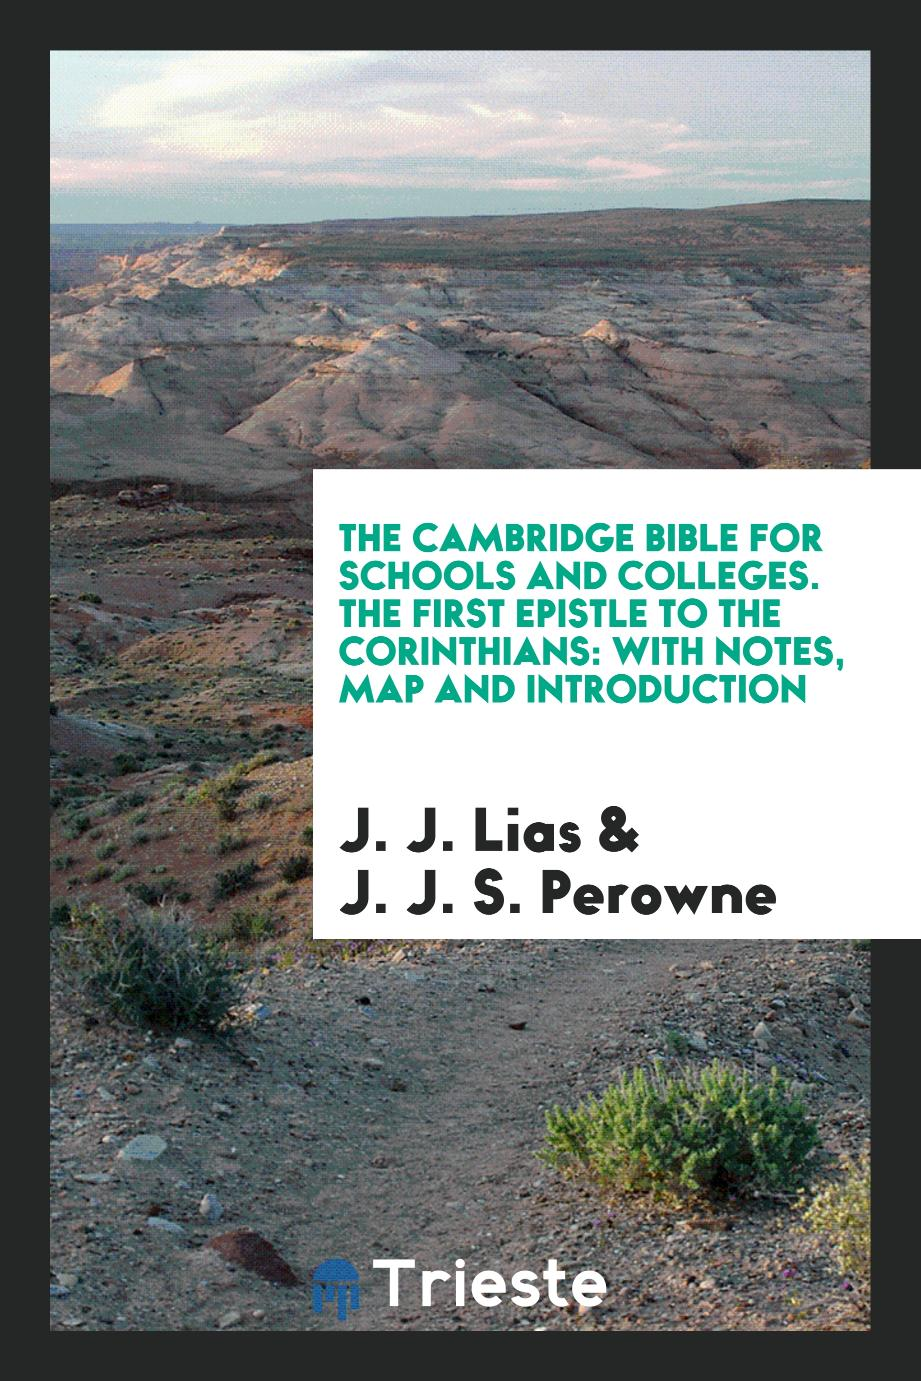 The Cambridge Bible for Schools and Colleges. The First Epistle to the Corinthians: With Notes, Map and Introduction